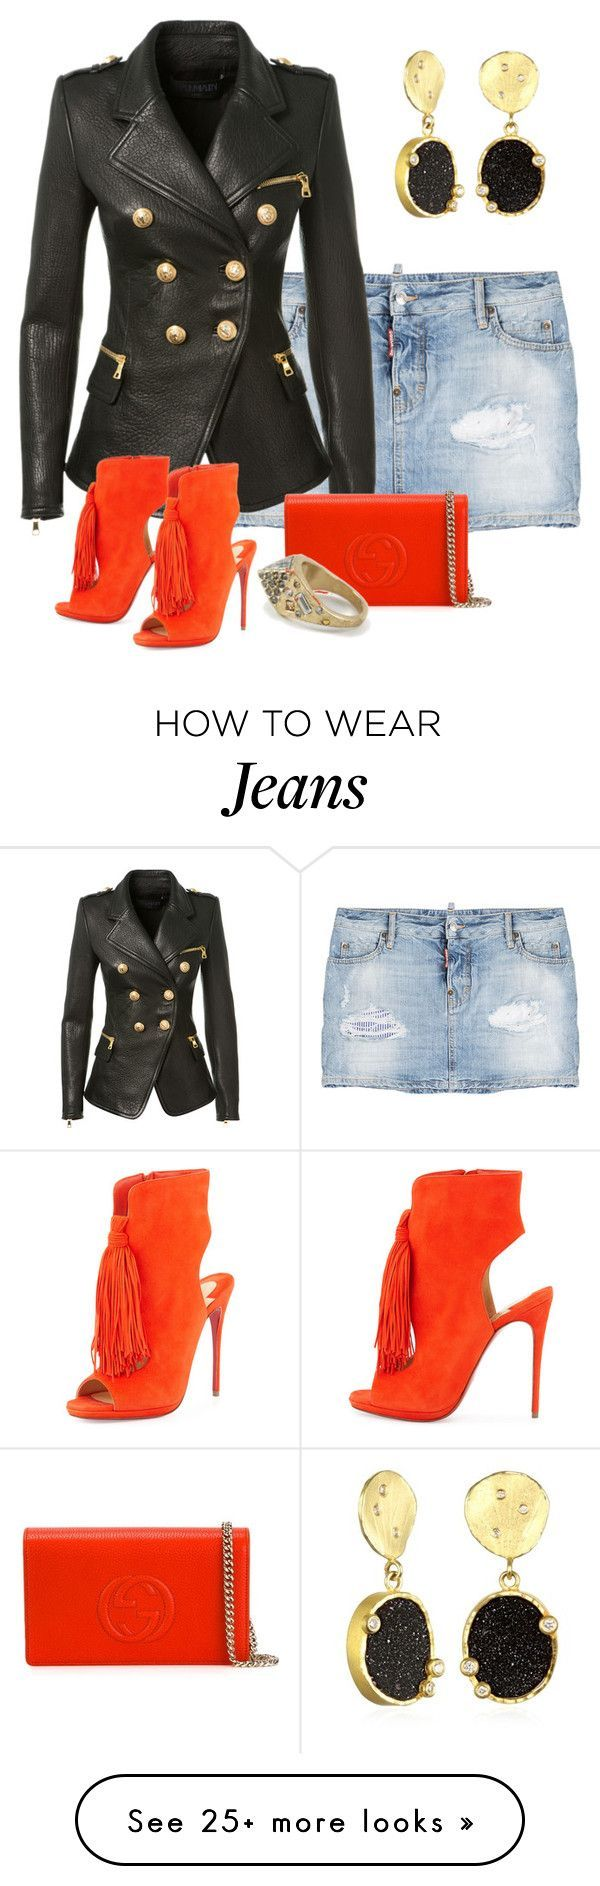 """""""Untitled #2021"""" by anfernee-131 on Polyvore featuring Dsquared2, Balmain, Christian Louboutin, Gucci, women's clothing, women's fashion, women, female, woman and misses"""